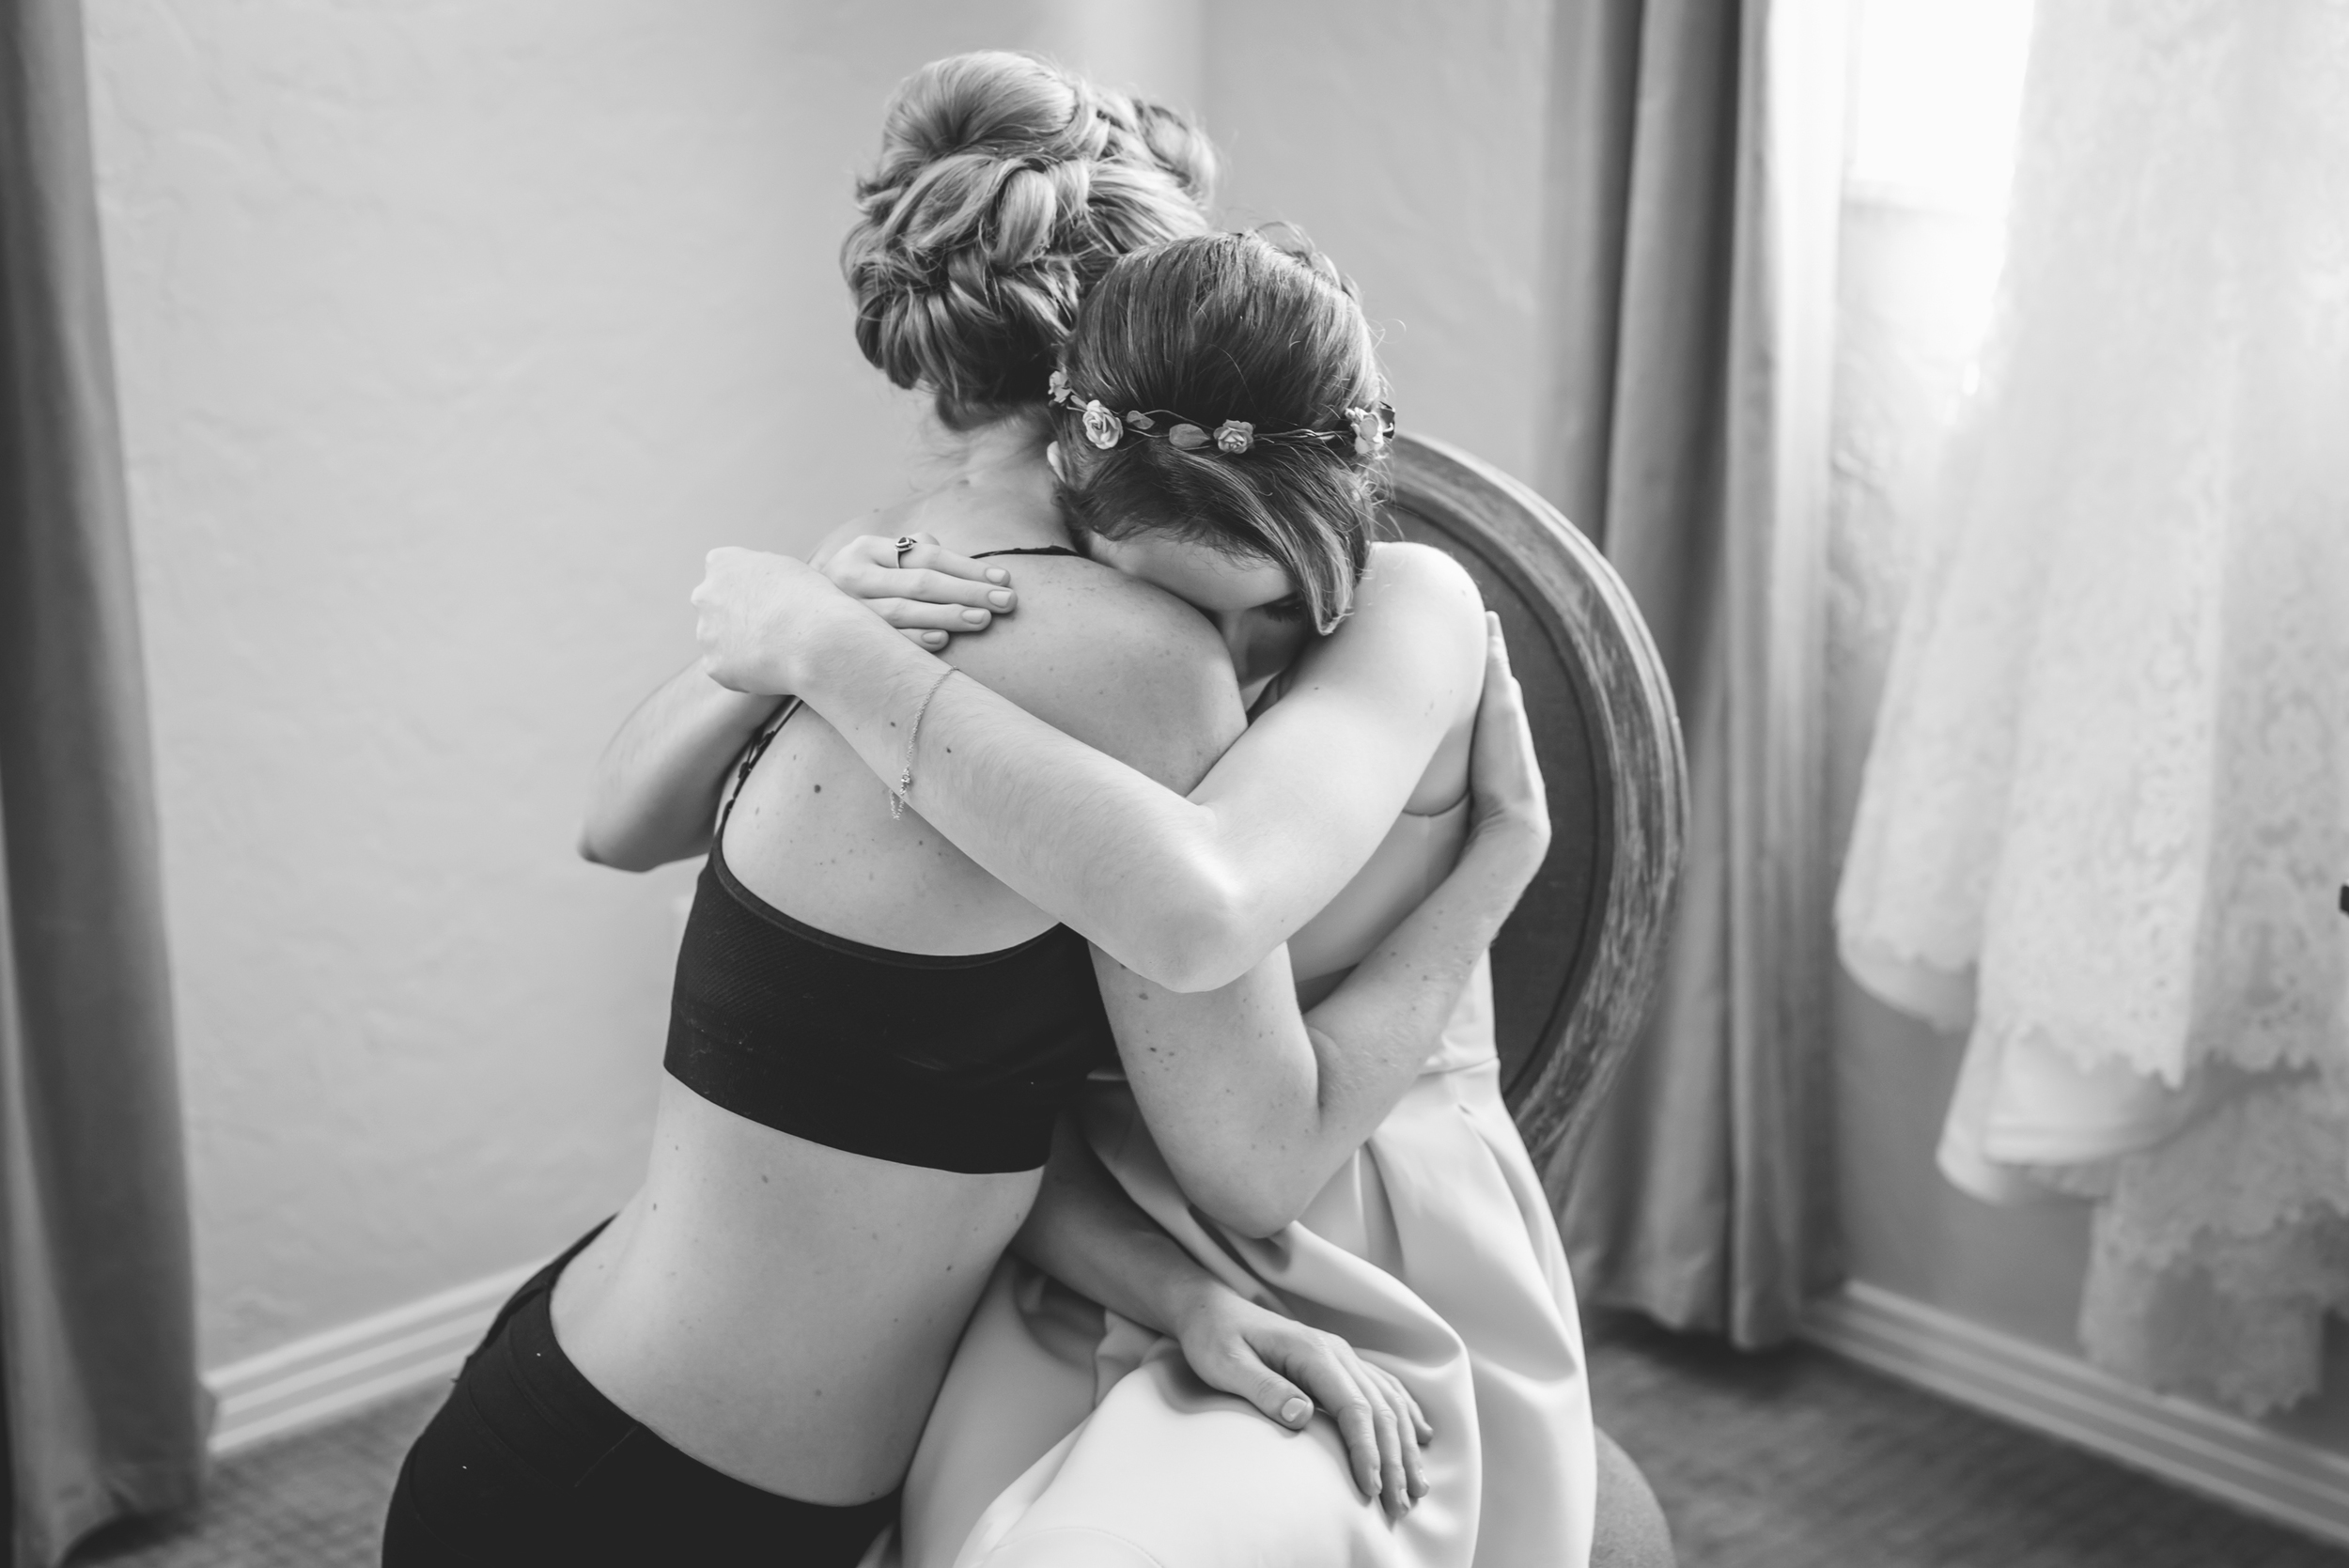 tampa-wedding-photographer-black-white-bw-candid-intimate-hug-getting-ready